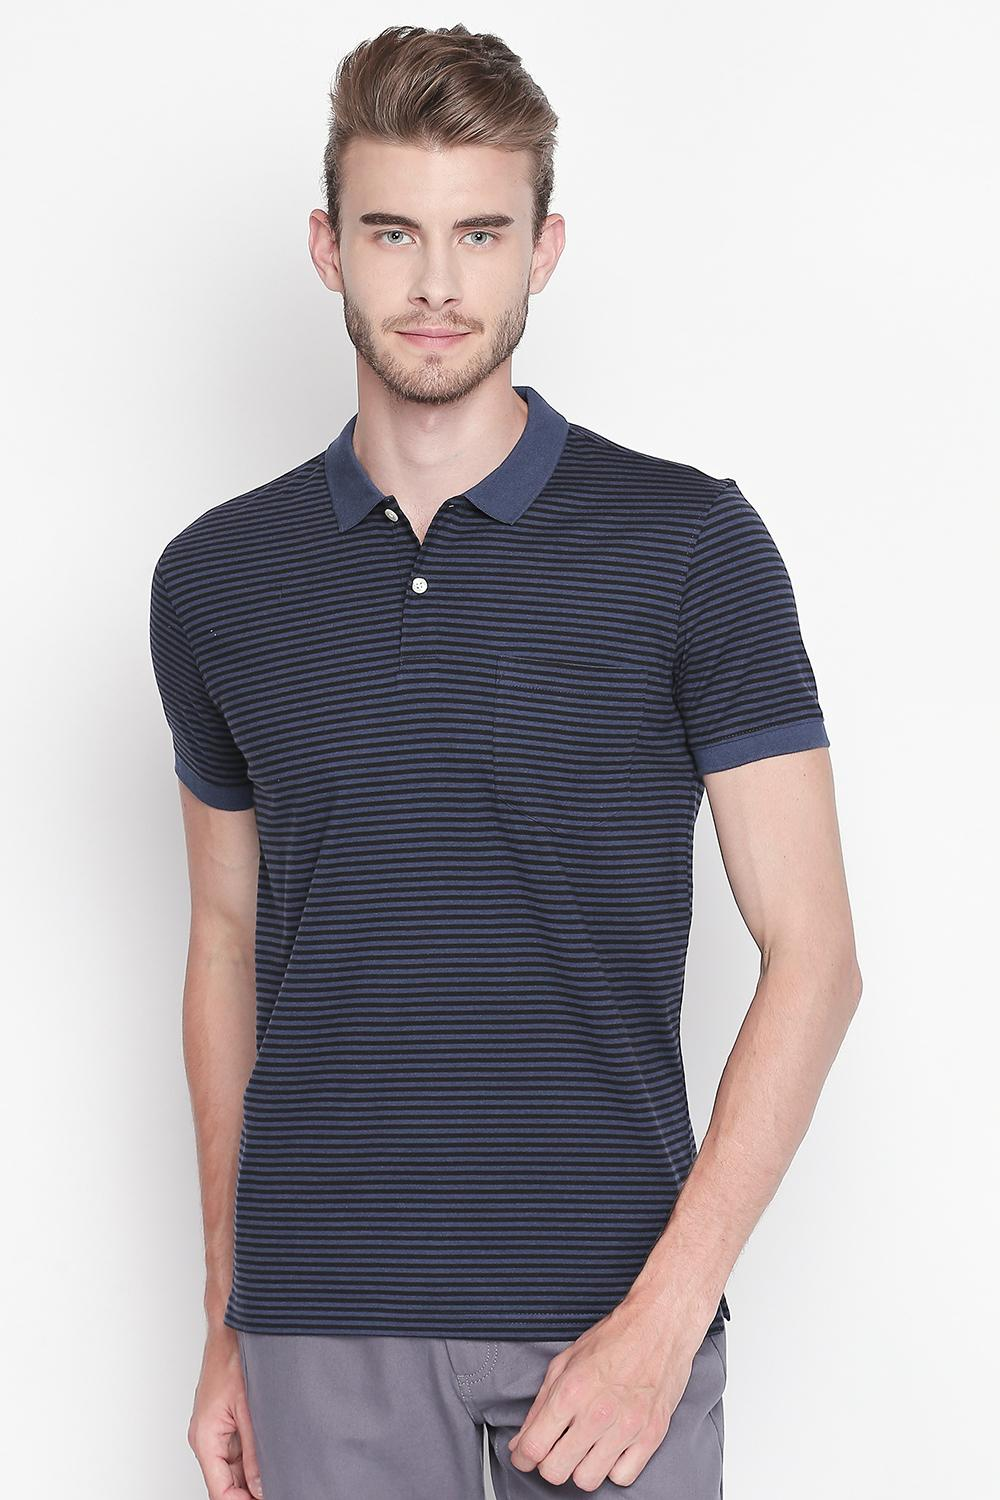 e95ec67a Buy T Shirts for Men Online with Best Price in India | Pantaloons